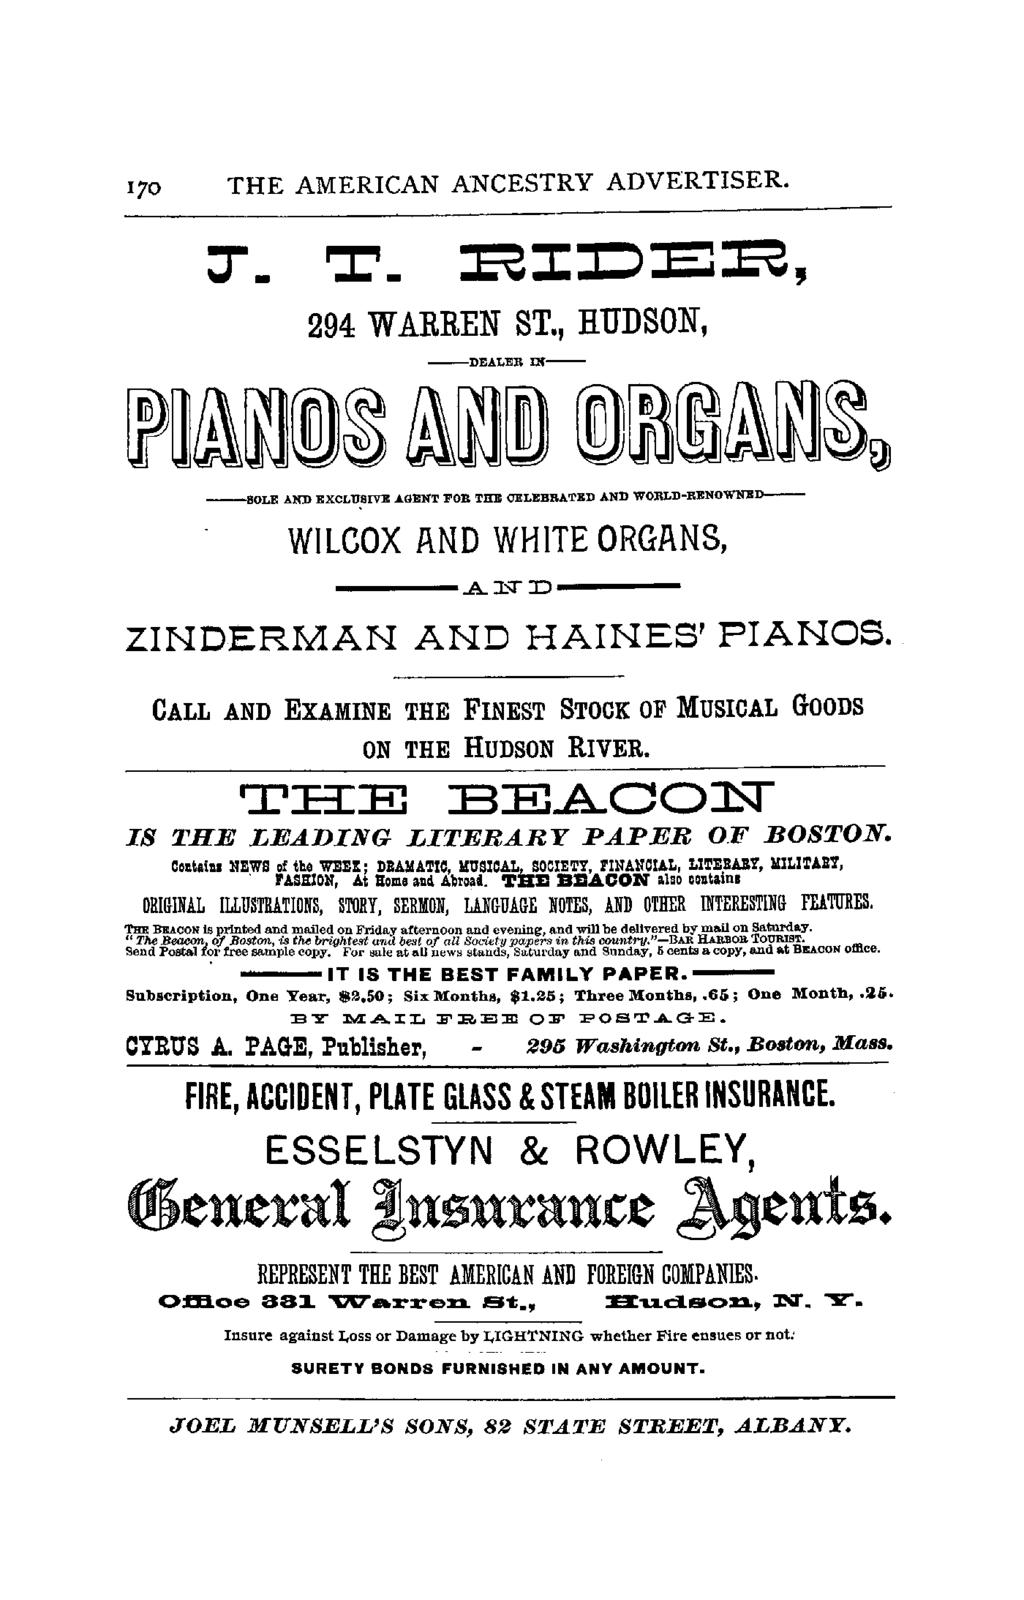 170 THE AMERICAN ANCESTRY ADVERTISER. ::r. ':1:'. 294 WARREN ST., HUDSON, -DEALER IN- -SOLE AND EXCLUSIVE AGENT FOR THE CELEBRATED AND WOBLD-RENOWNBD- WILCOX AND WHITE ORGANS, ----.A J,.